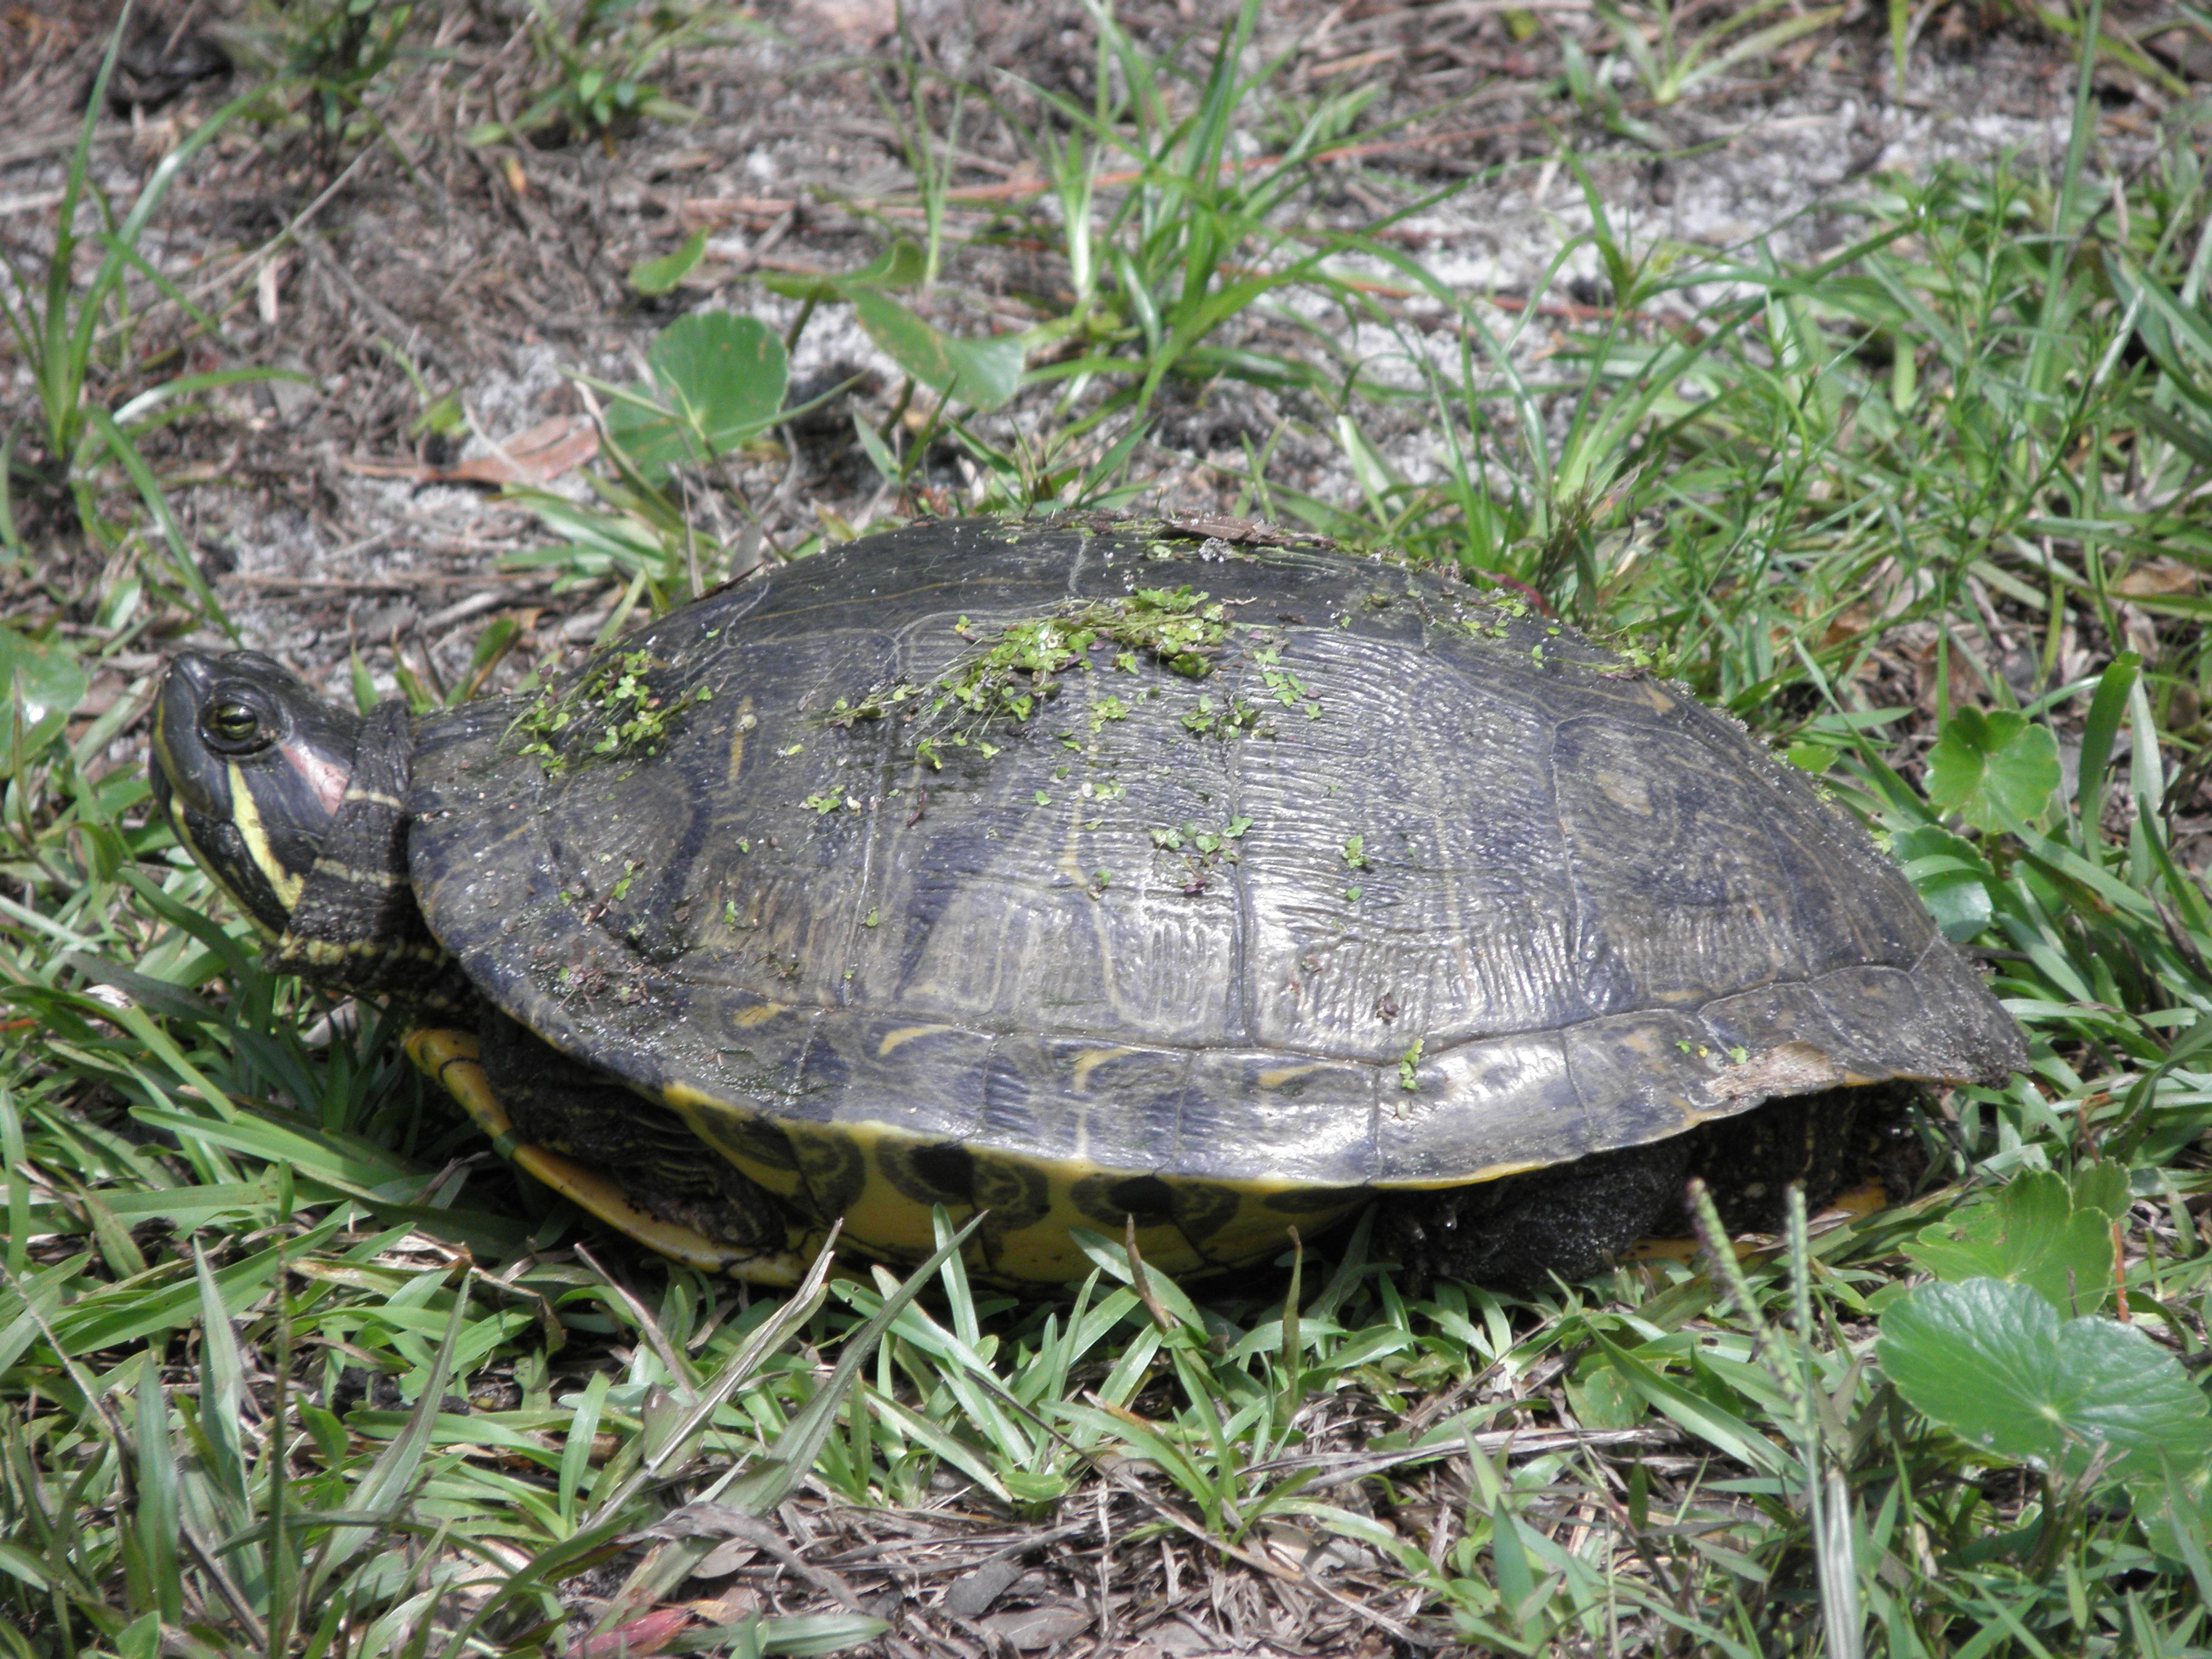 a florida red bellied turtle we think they come up from a small